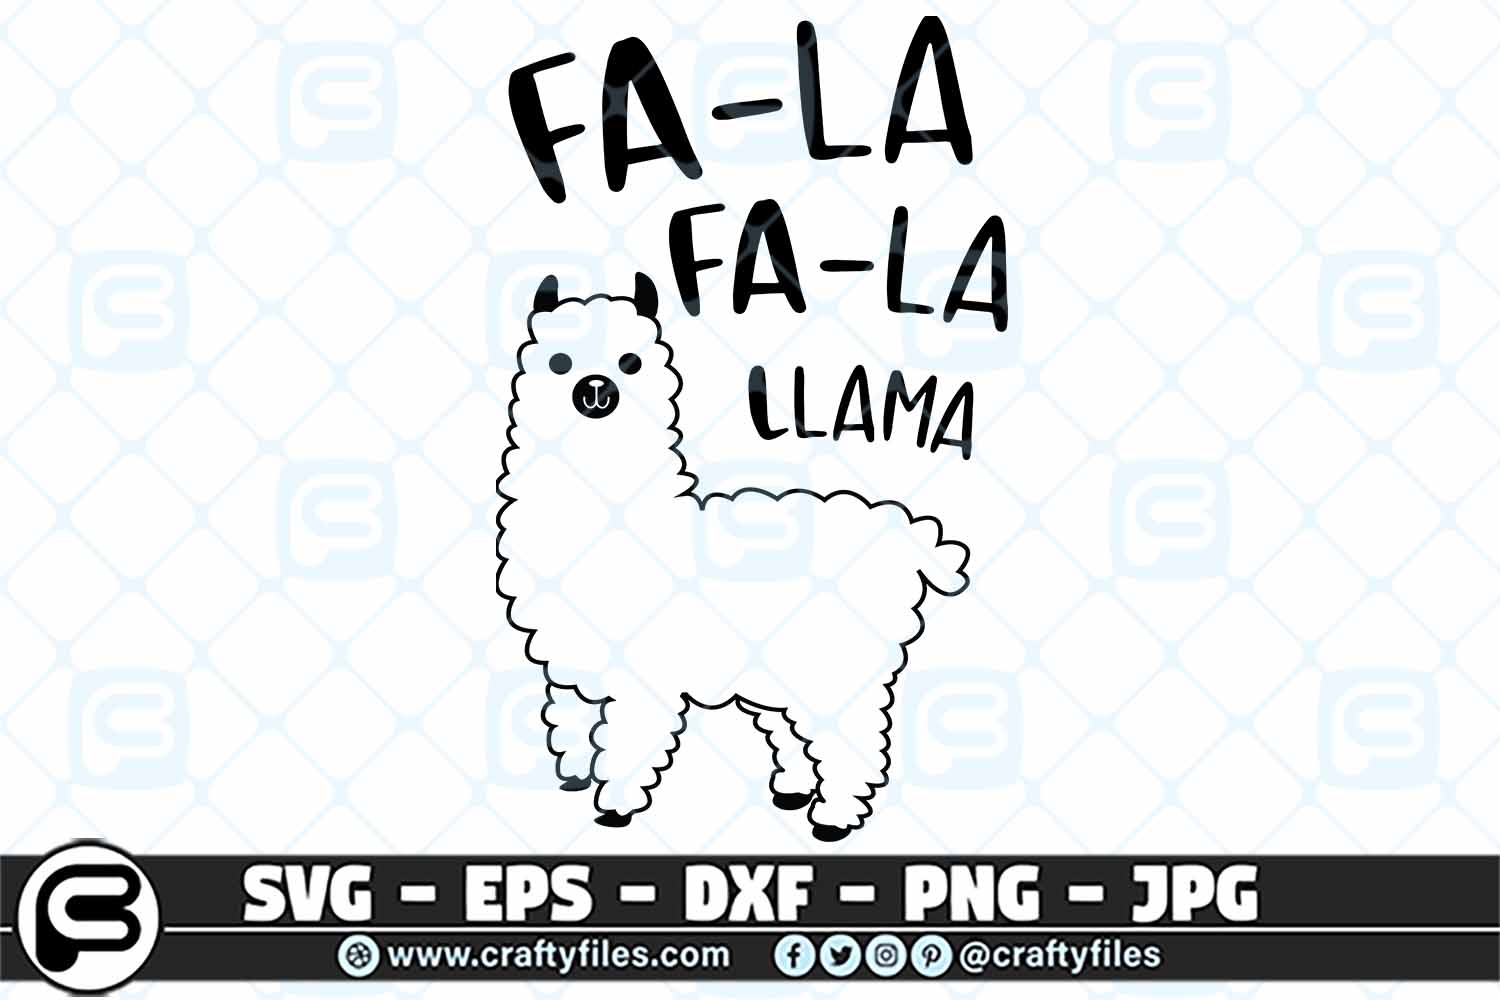 Download Free Fala Fala Llama Svg Mama Llama Svg Cut Graphic By Crafty Files for Cricut Explore, Silhouette and other cutting machines.